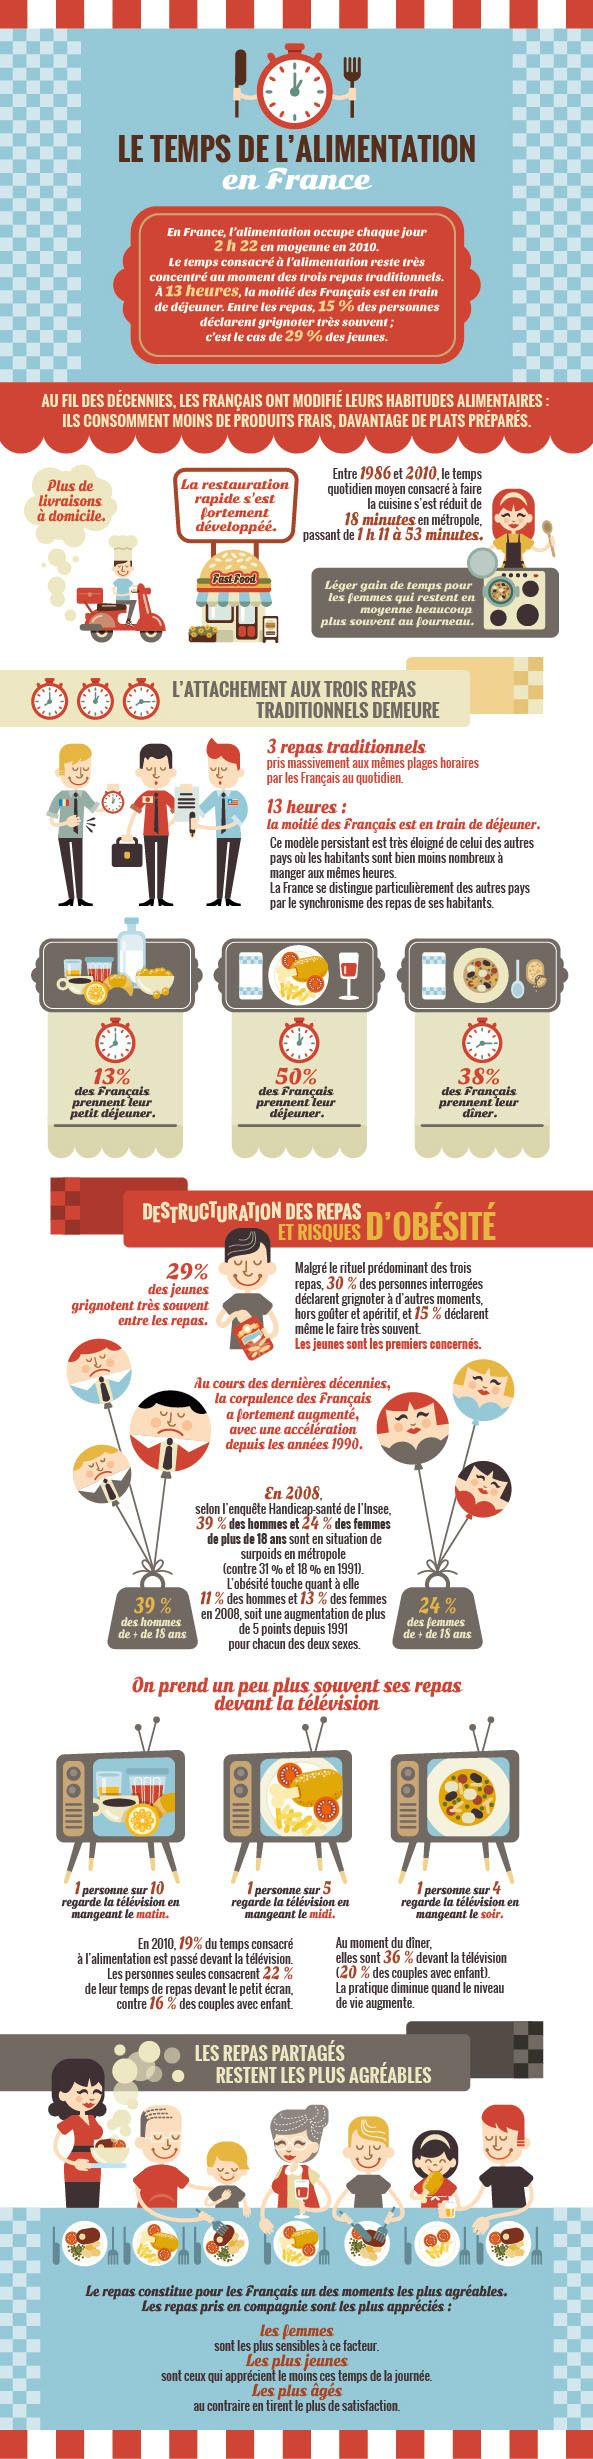 "Infographie ""Le temps de l'alimentation en France"" by Rose Kipik, via Behance"